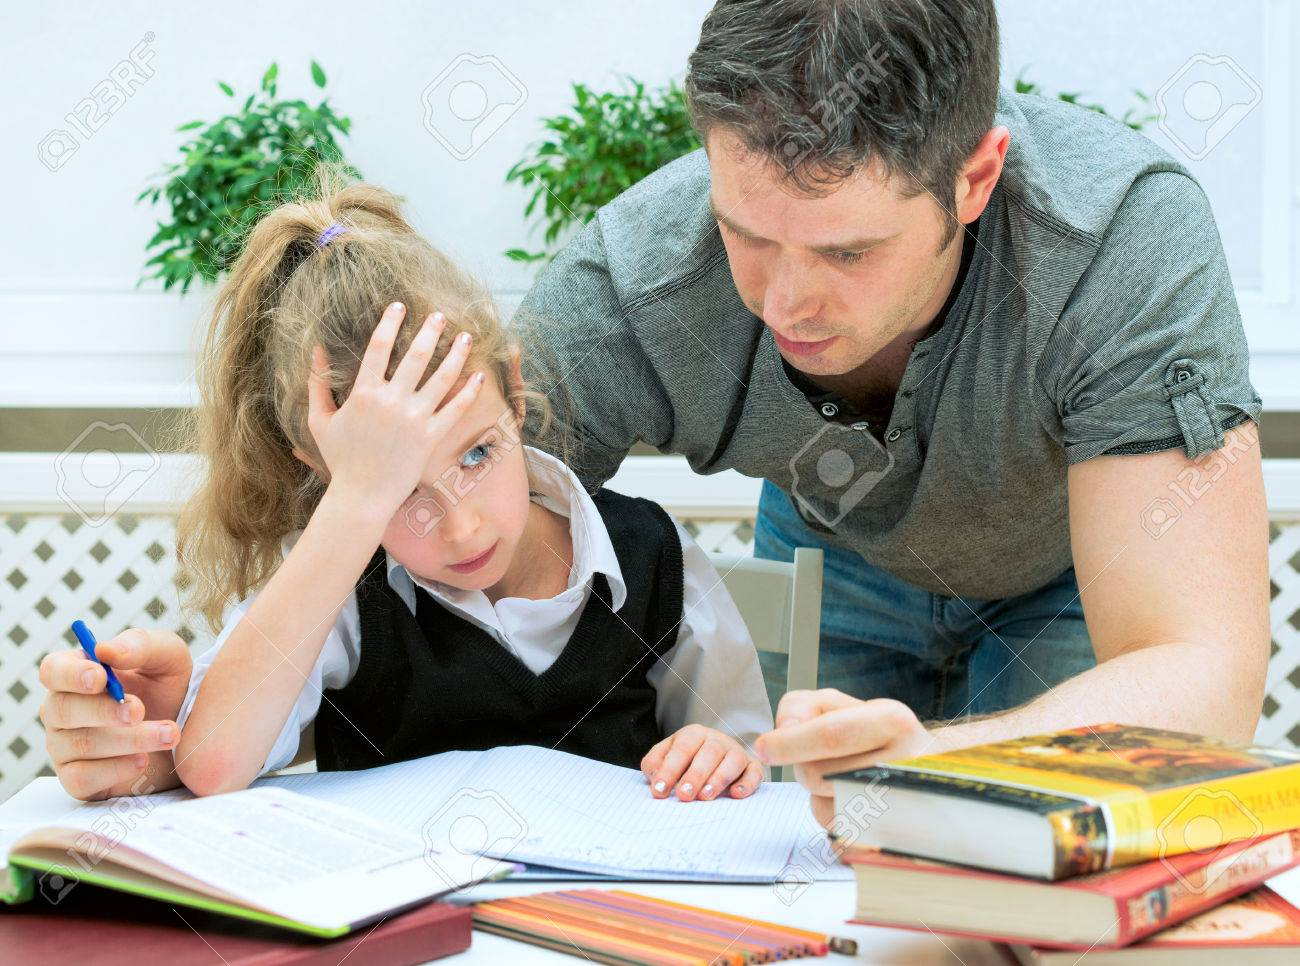 Father helping daughter with homework at home. - 50737058